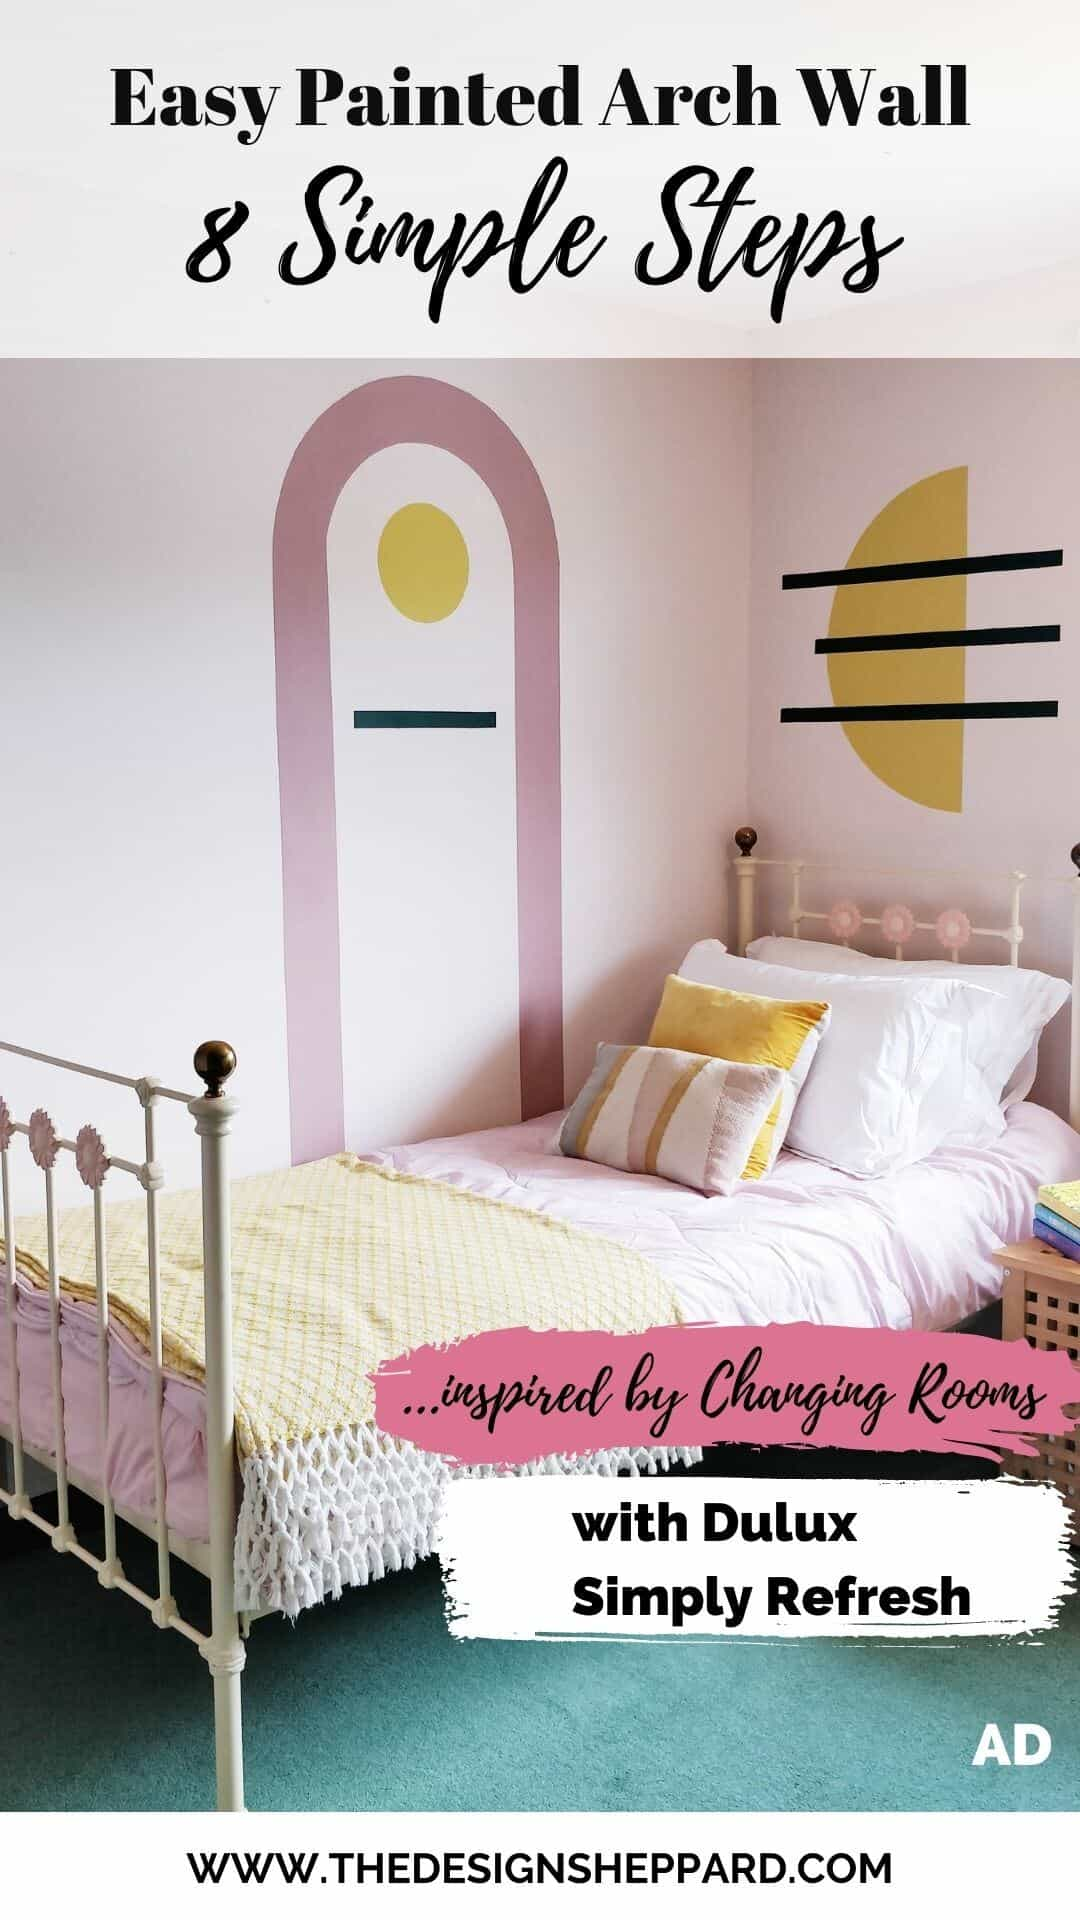 Pinterest Pin for creating a DIY Painted Arch Accent Wall